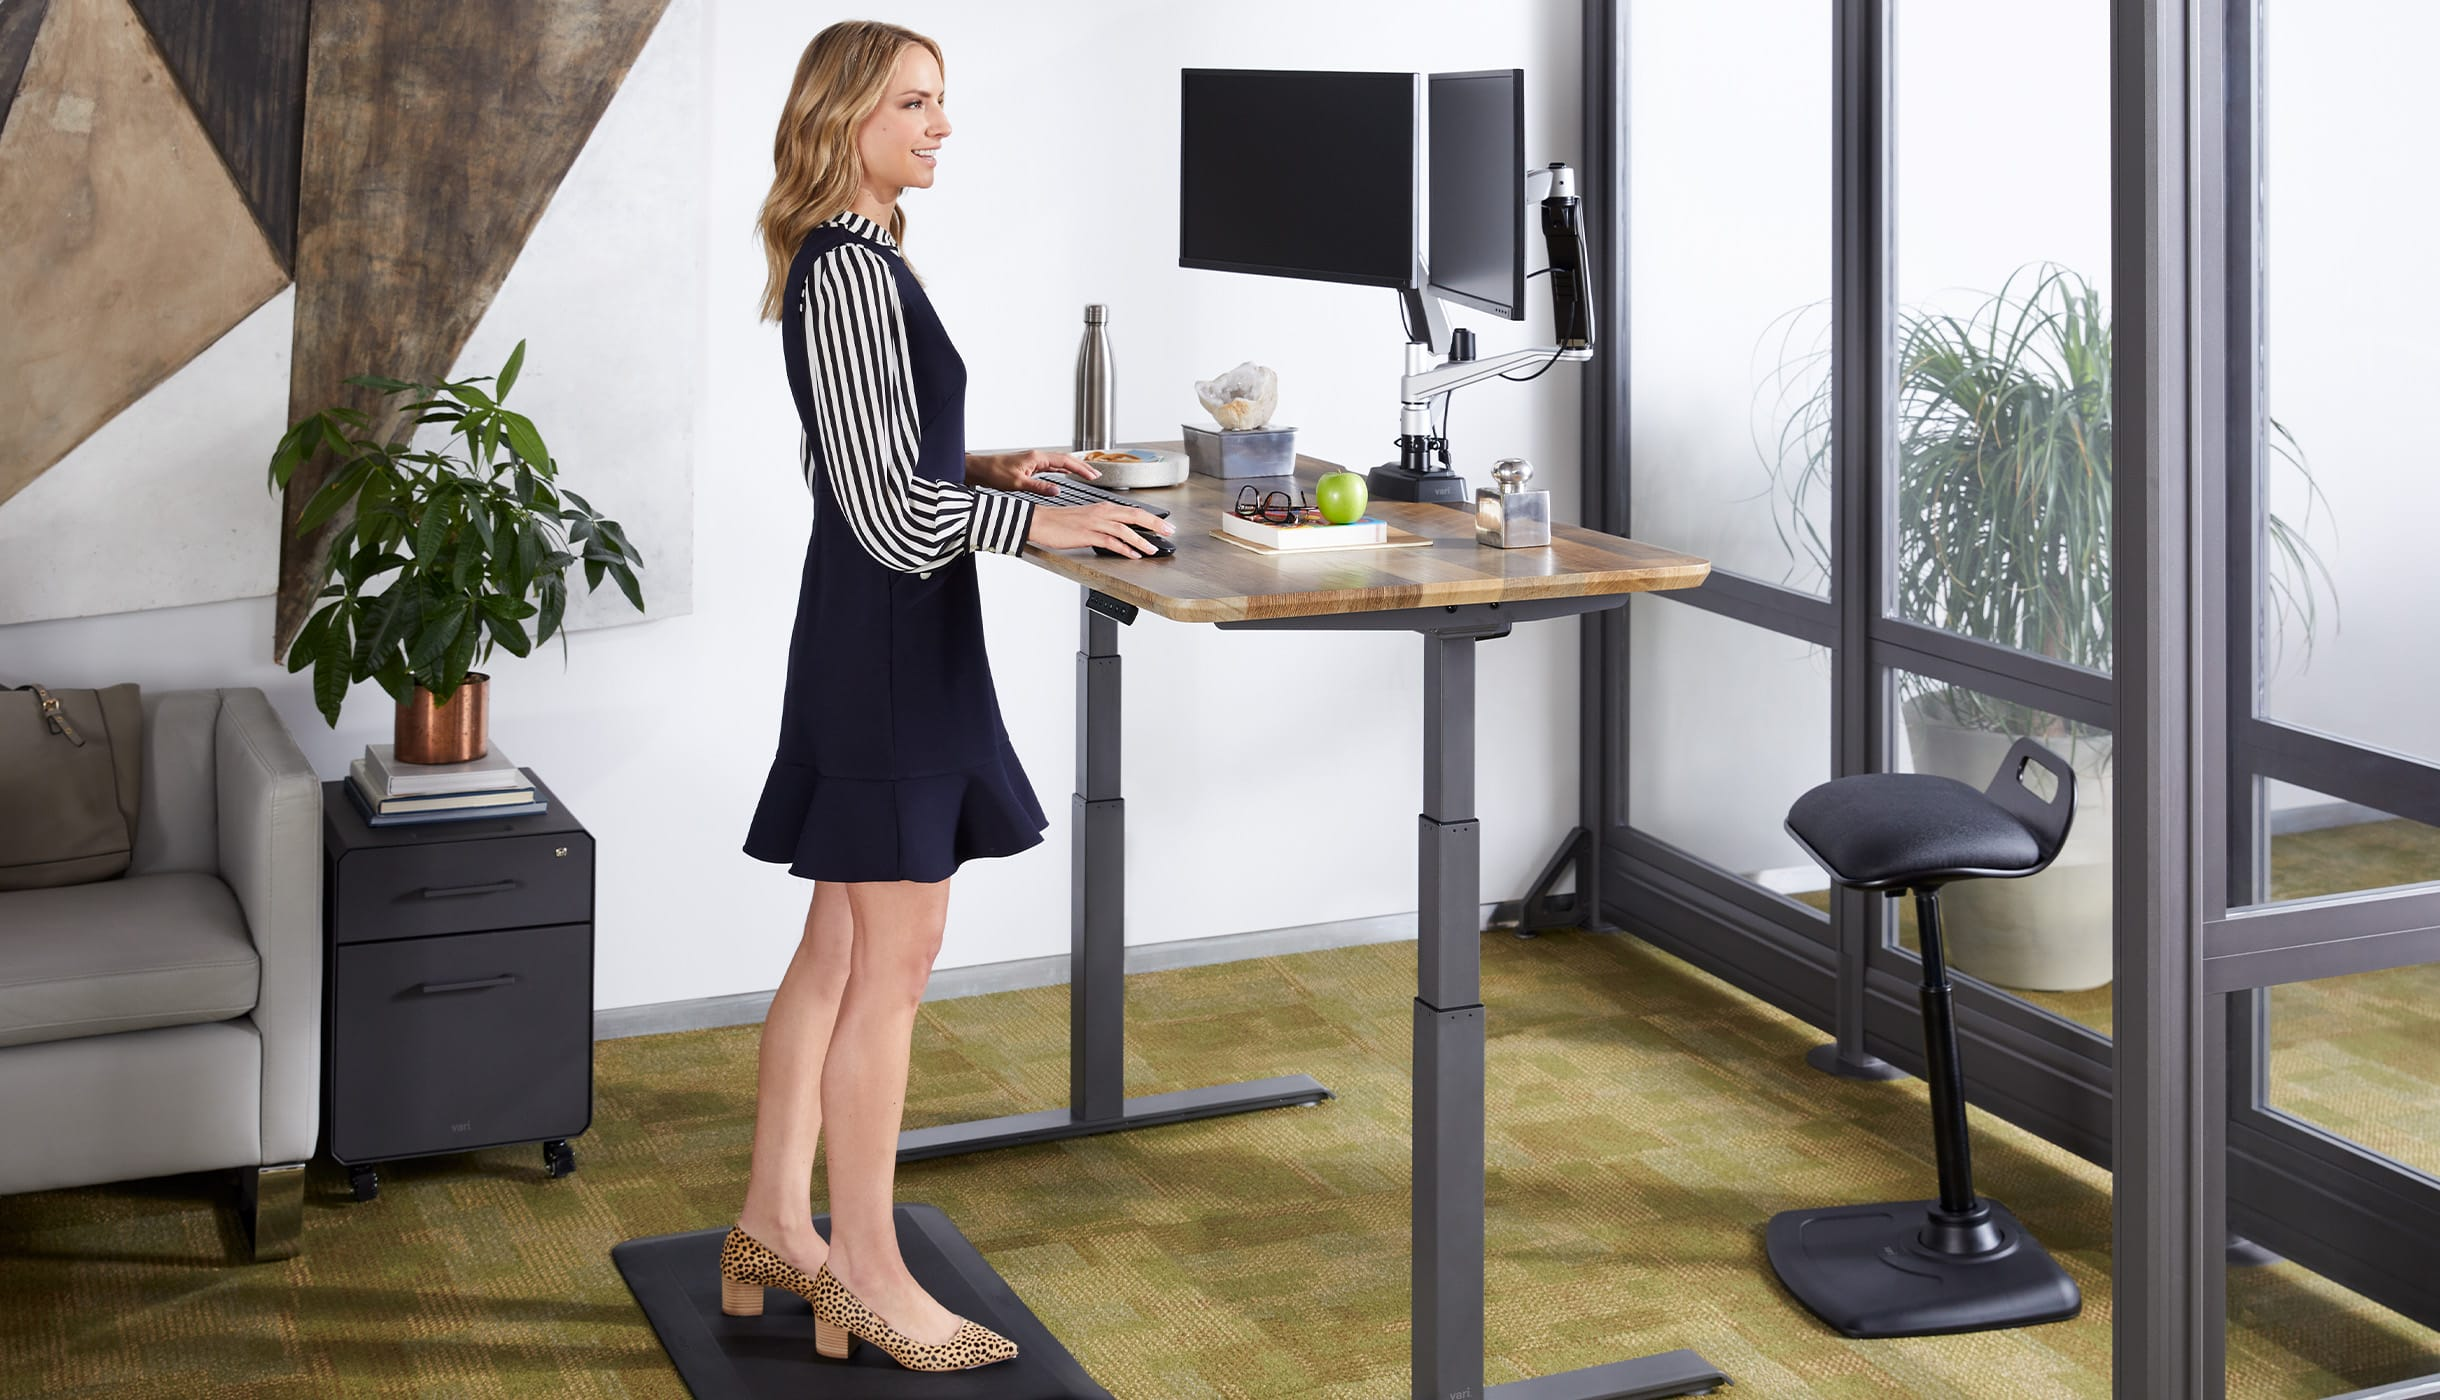 professional working in private office complete with the mentioned accessories